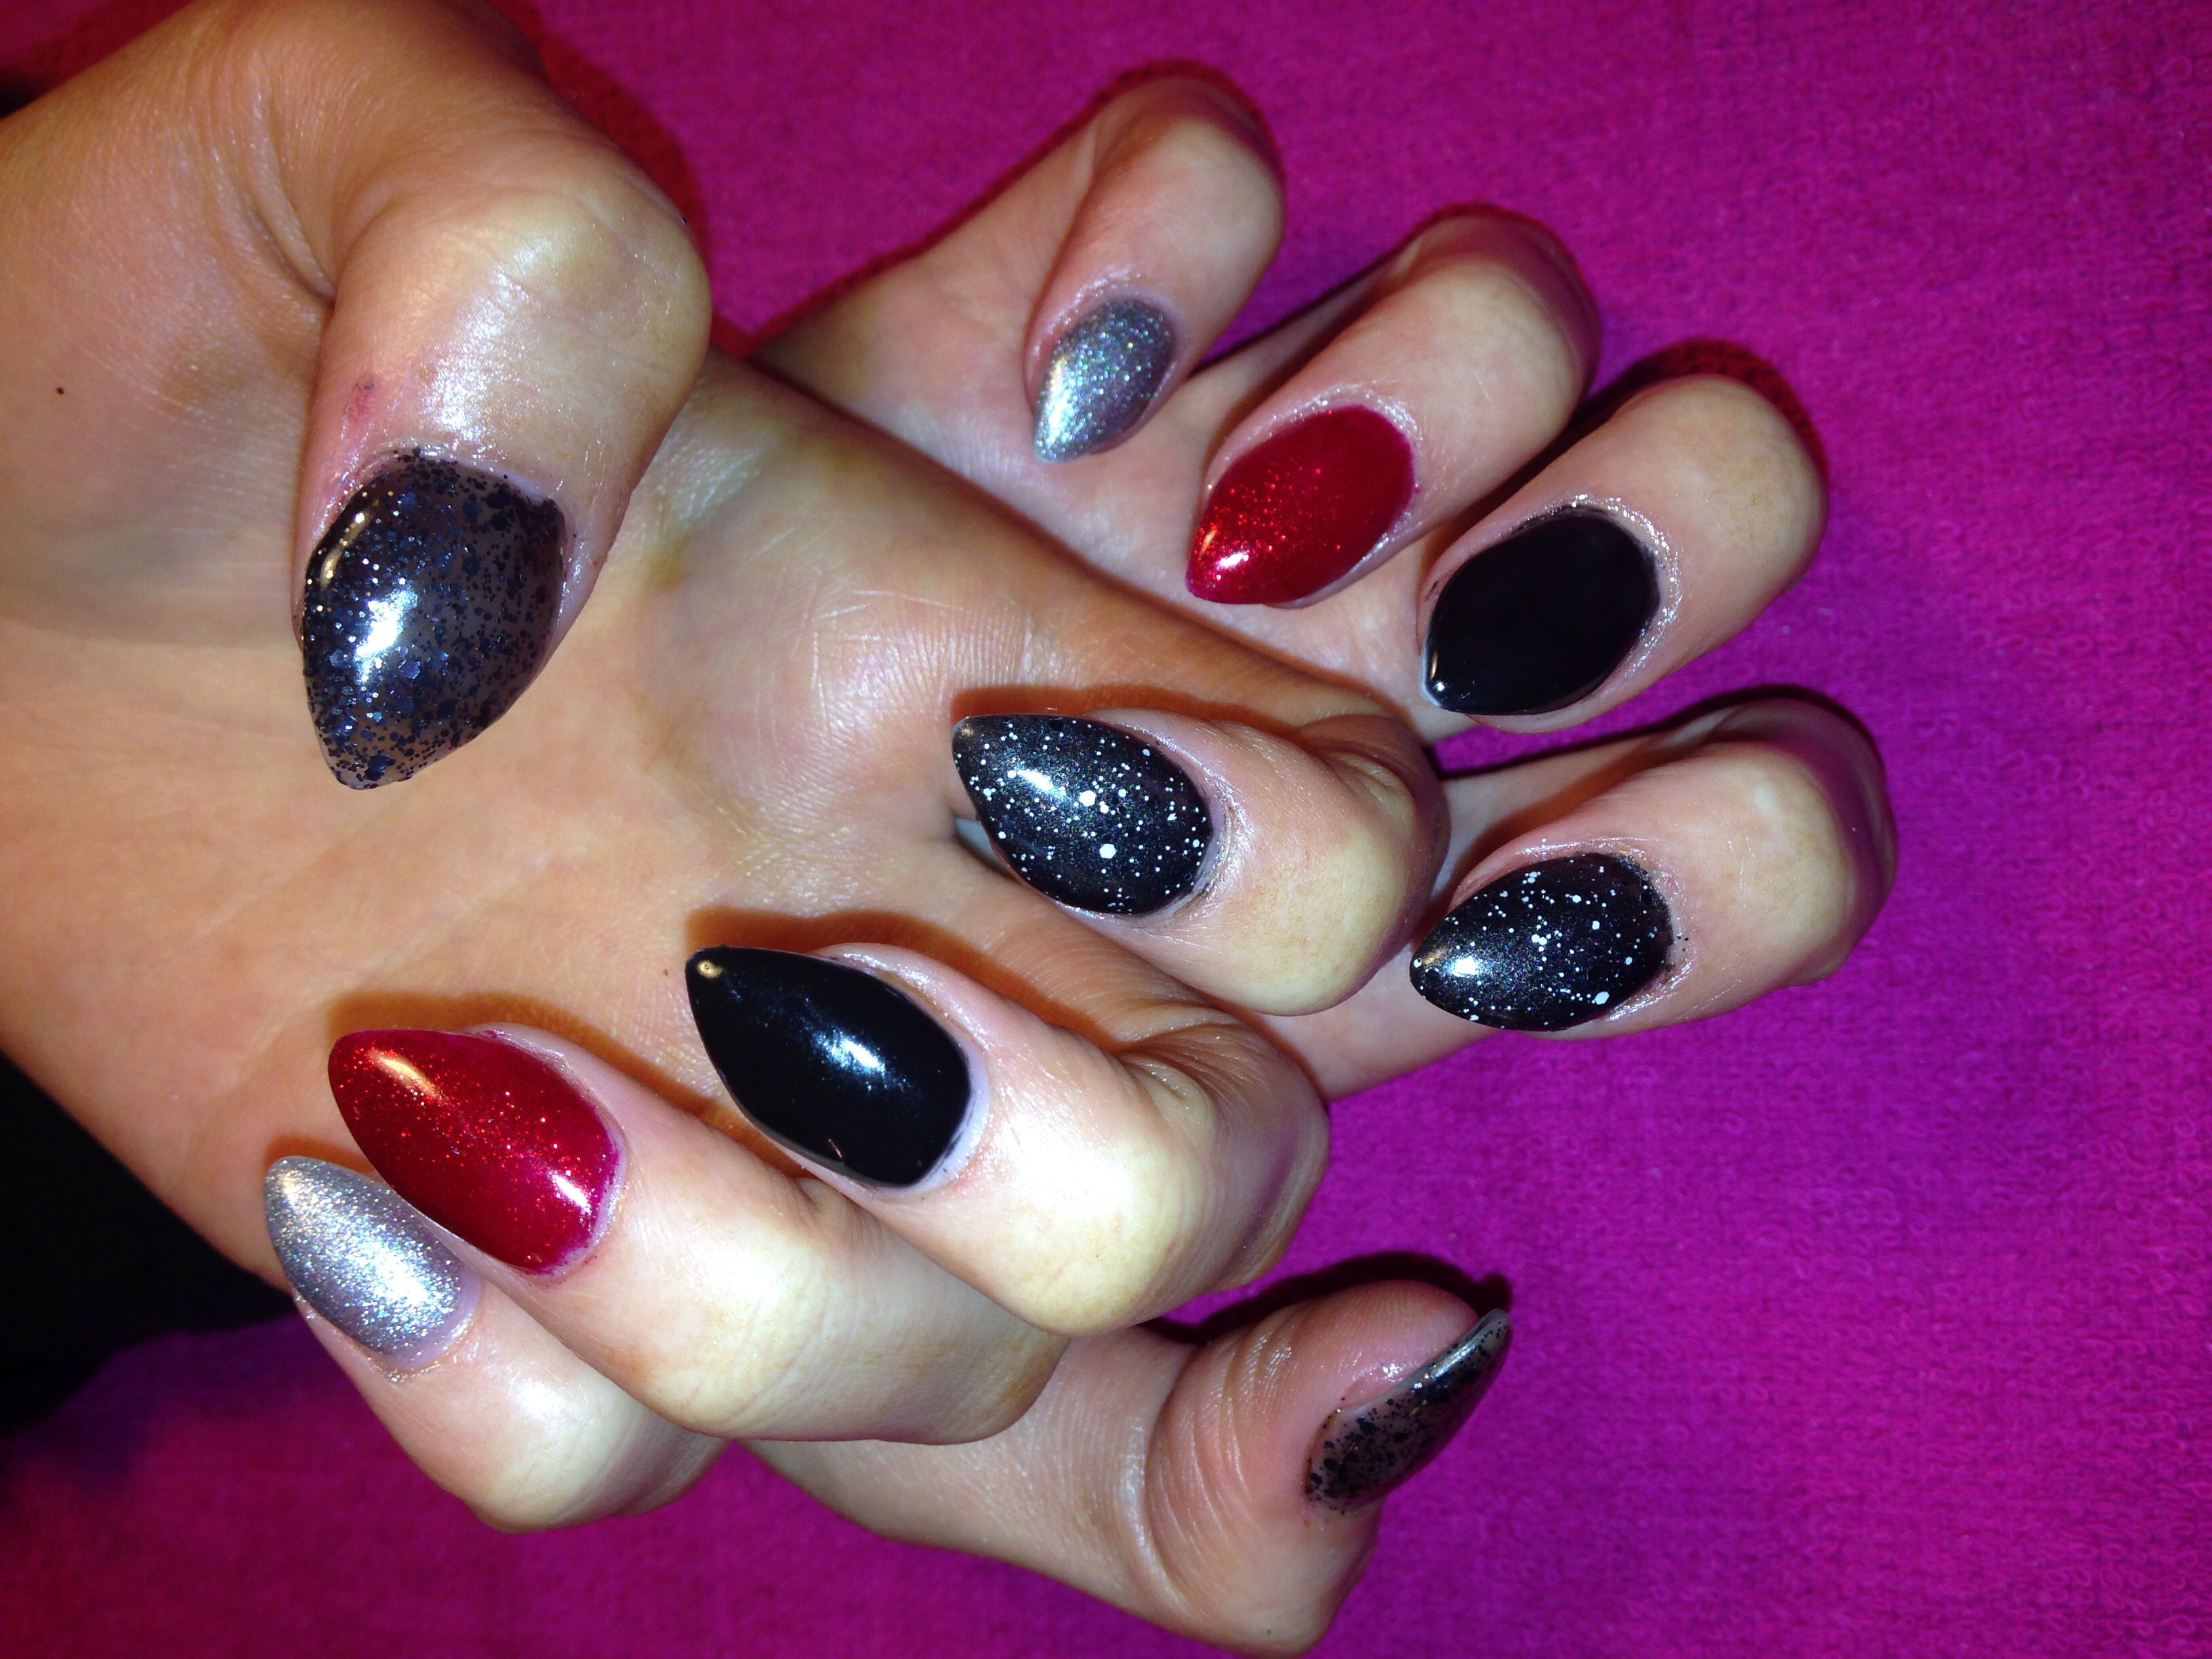 Full set of stiletto nails on natural nails. Her nails grew out with ...